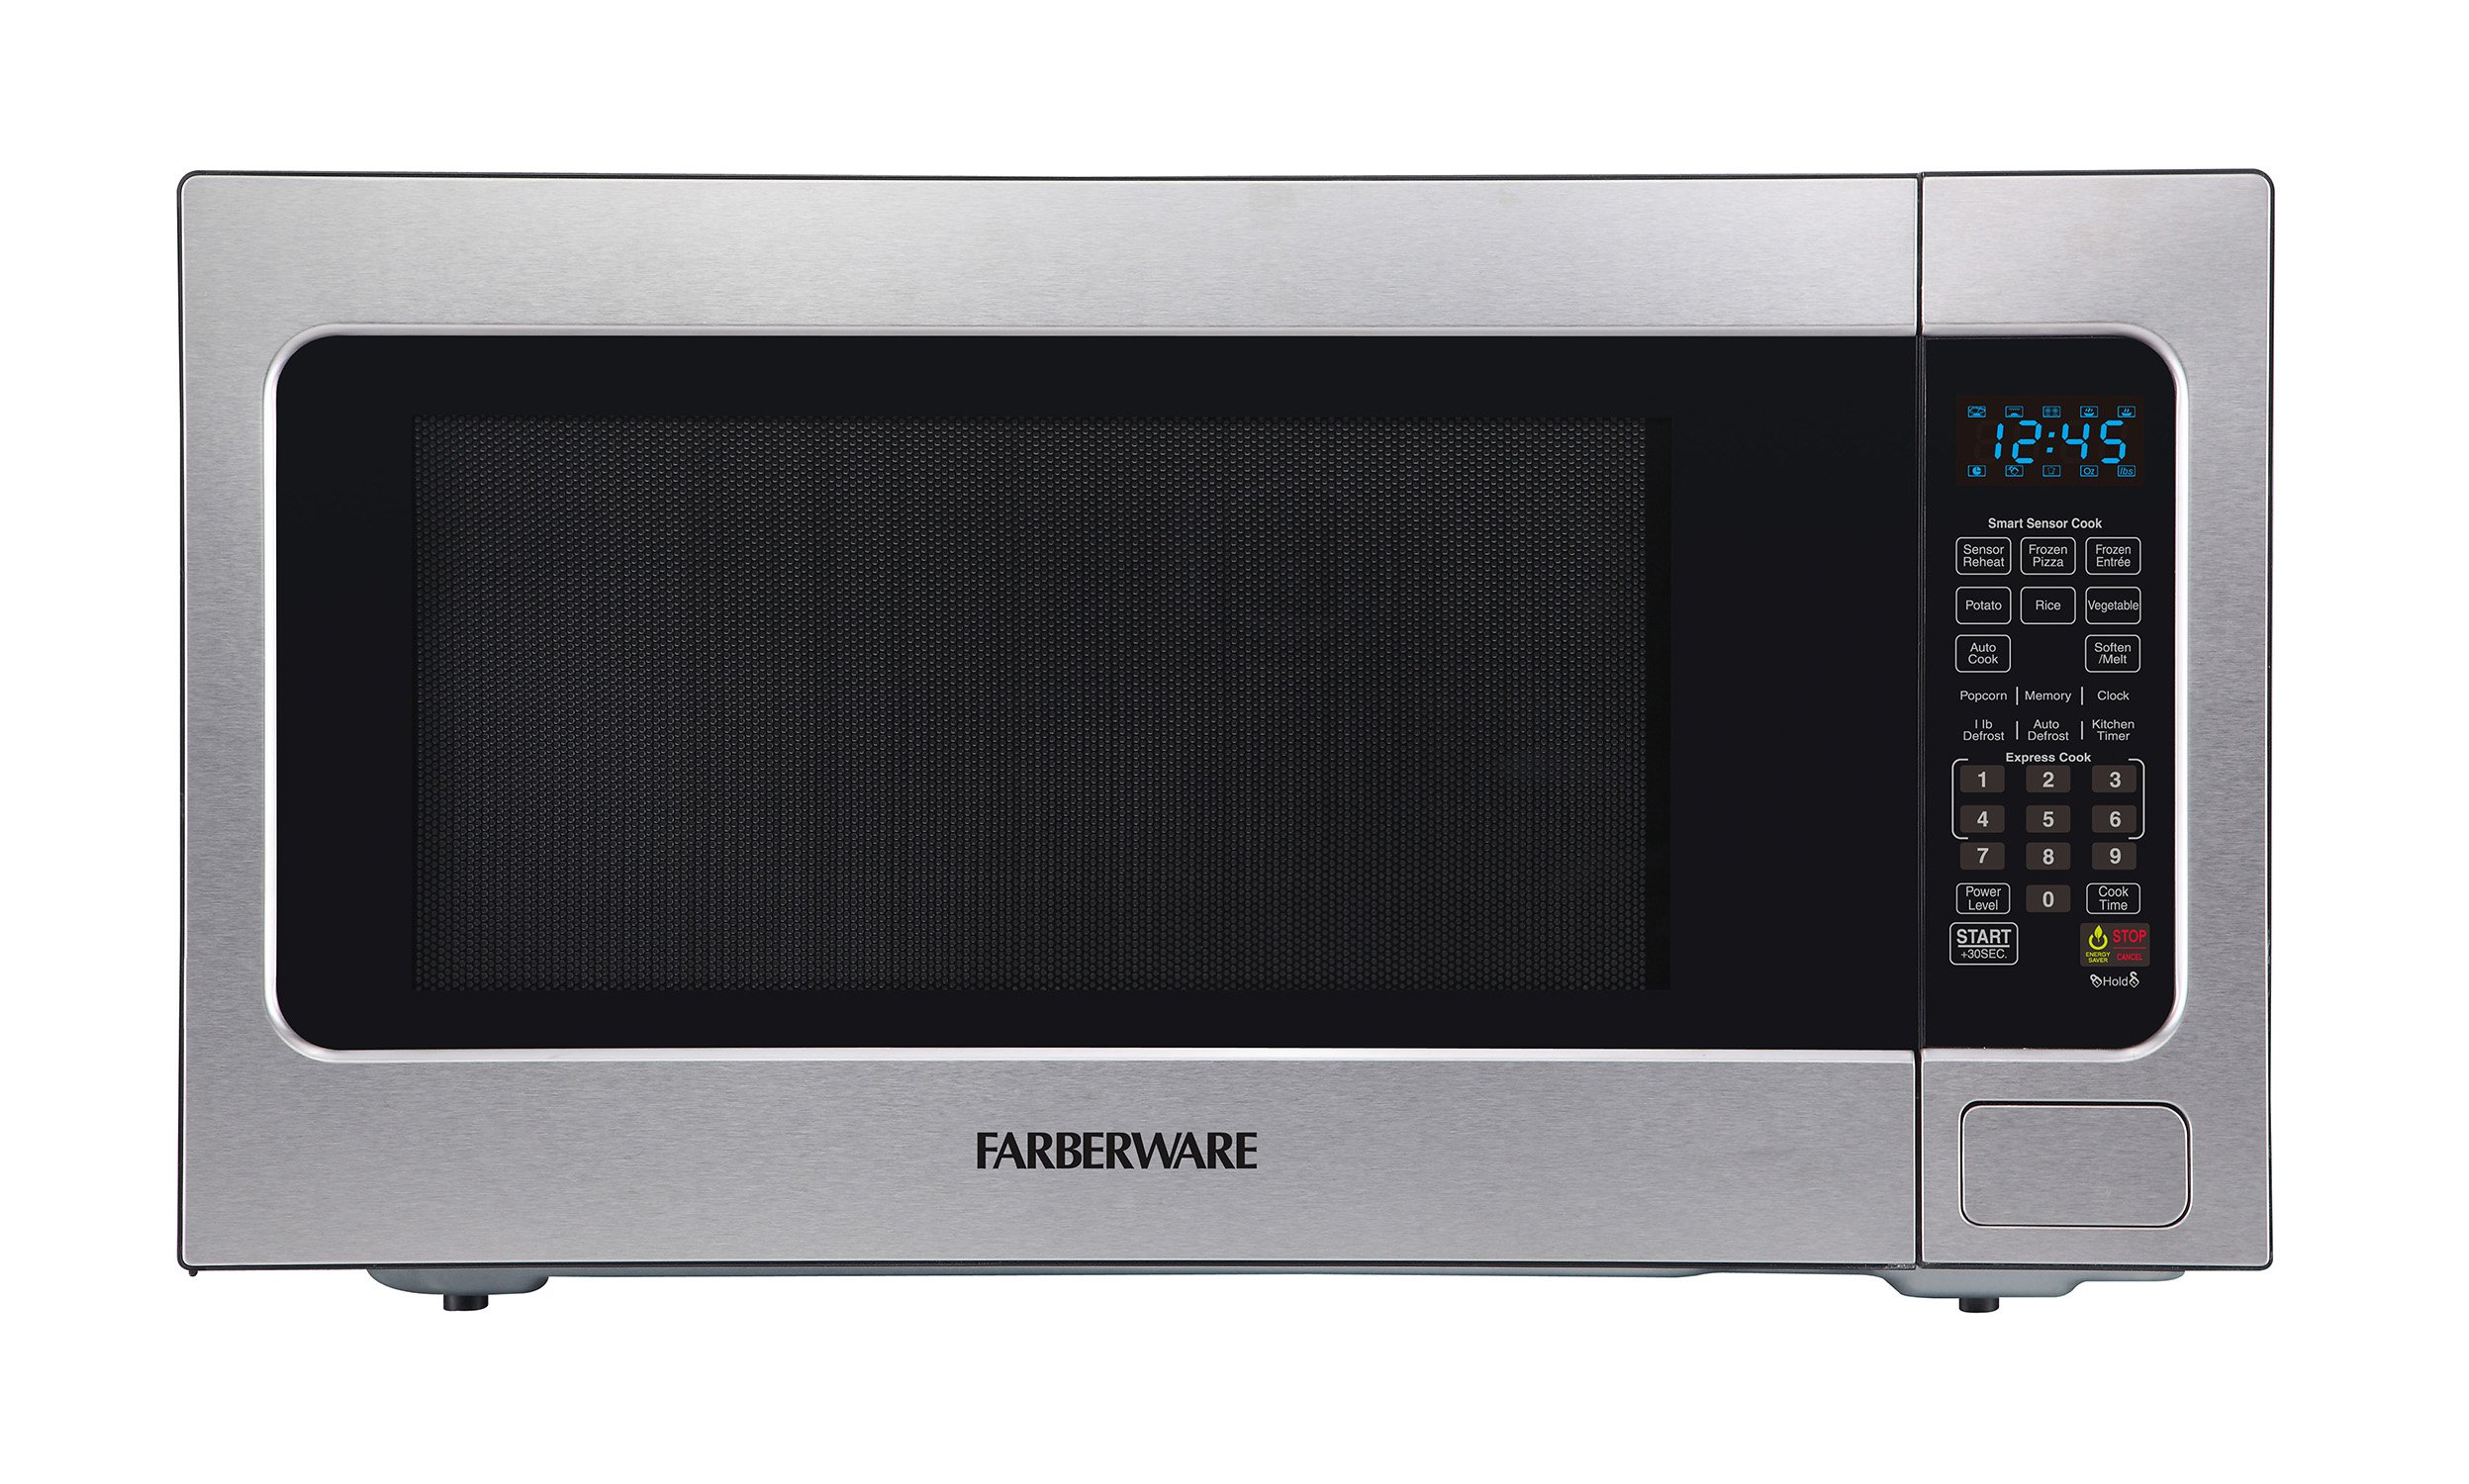 Farberware Professional FMO22ABTBKA 2.2 Cu. Ft. 1200-Watt Microwave Oven with Smart Sensor Cooking, ECO Mode and Blue LED Lighting, Stainless Steel by Farberware